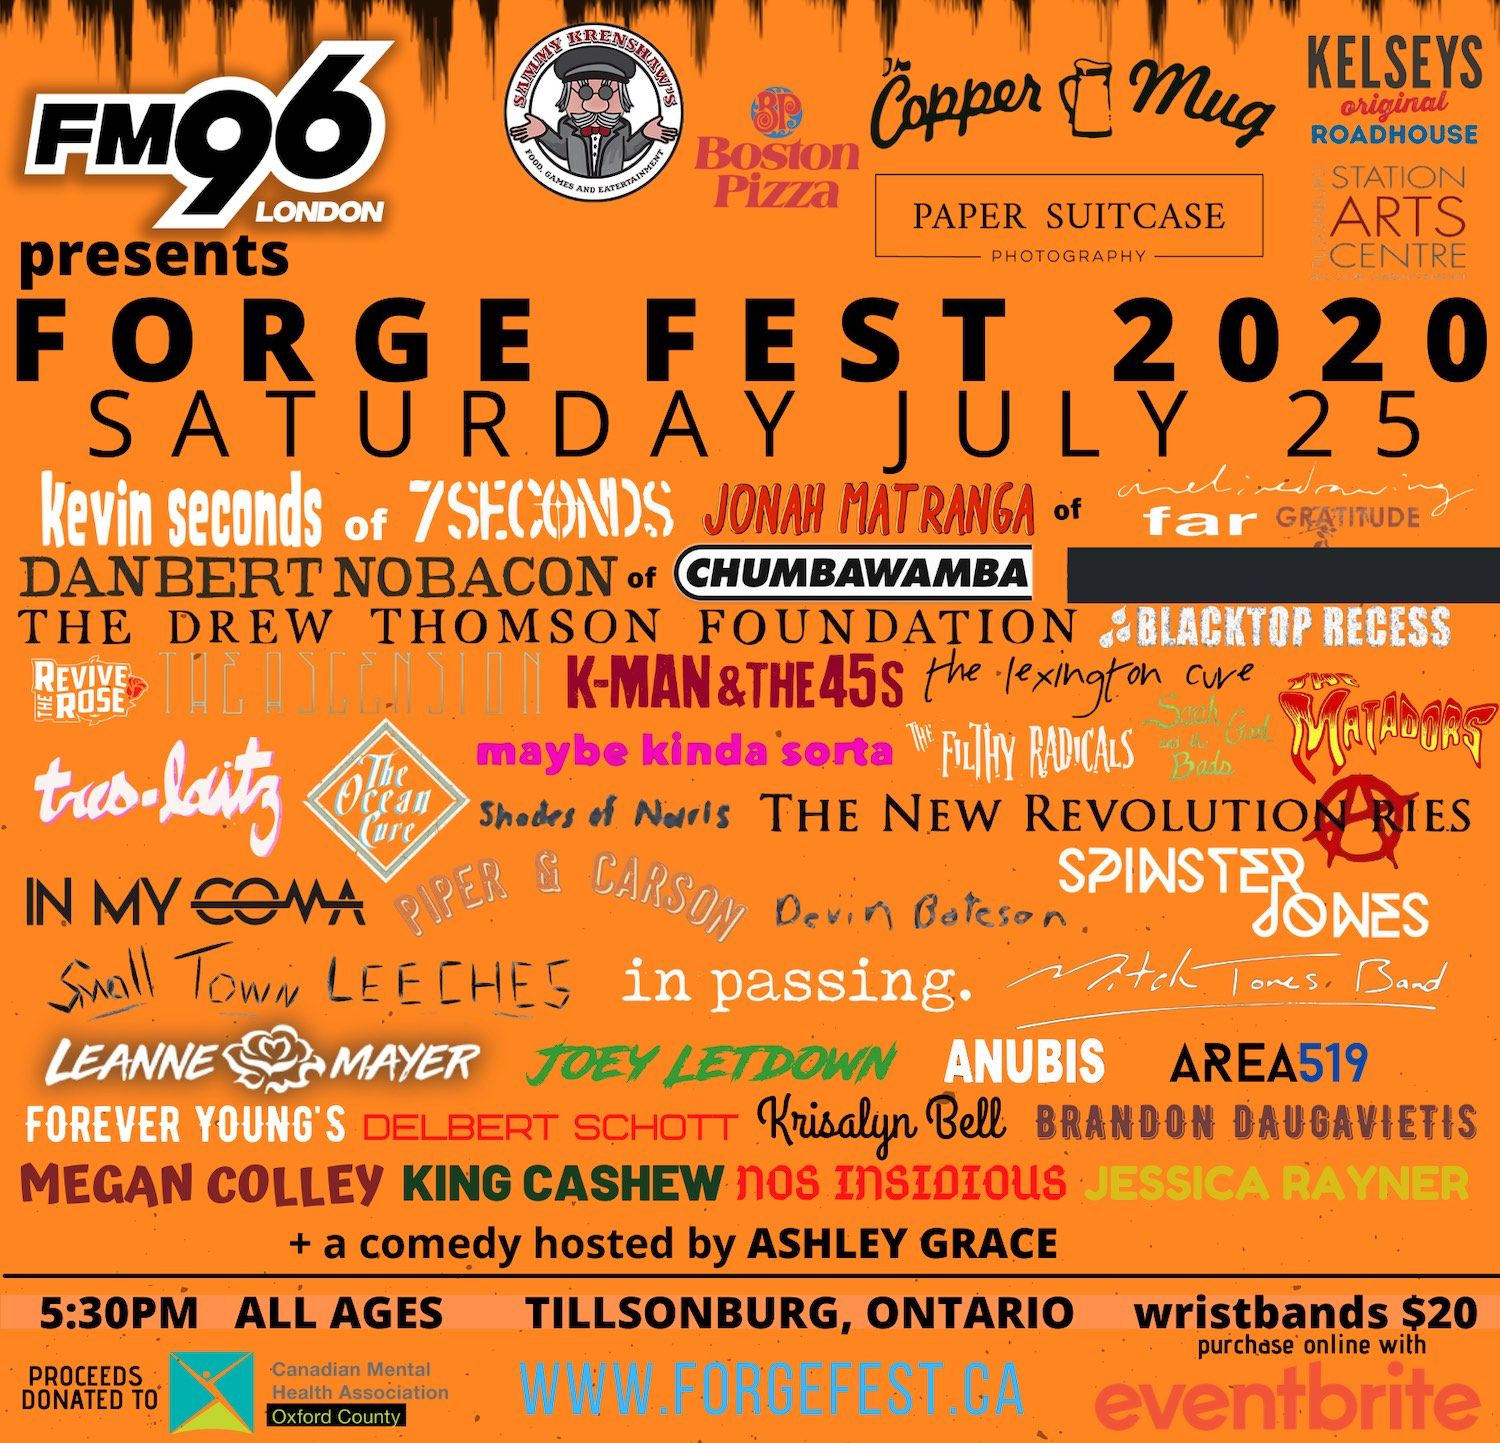 Forge Fest - Canada Music Festivals 2020